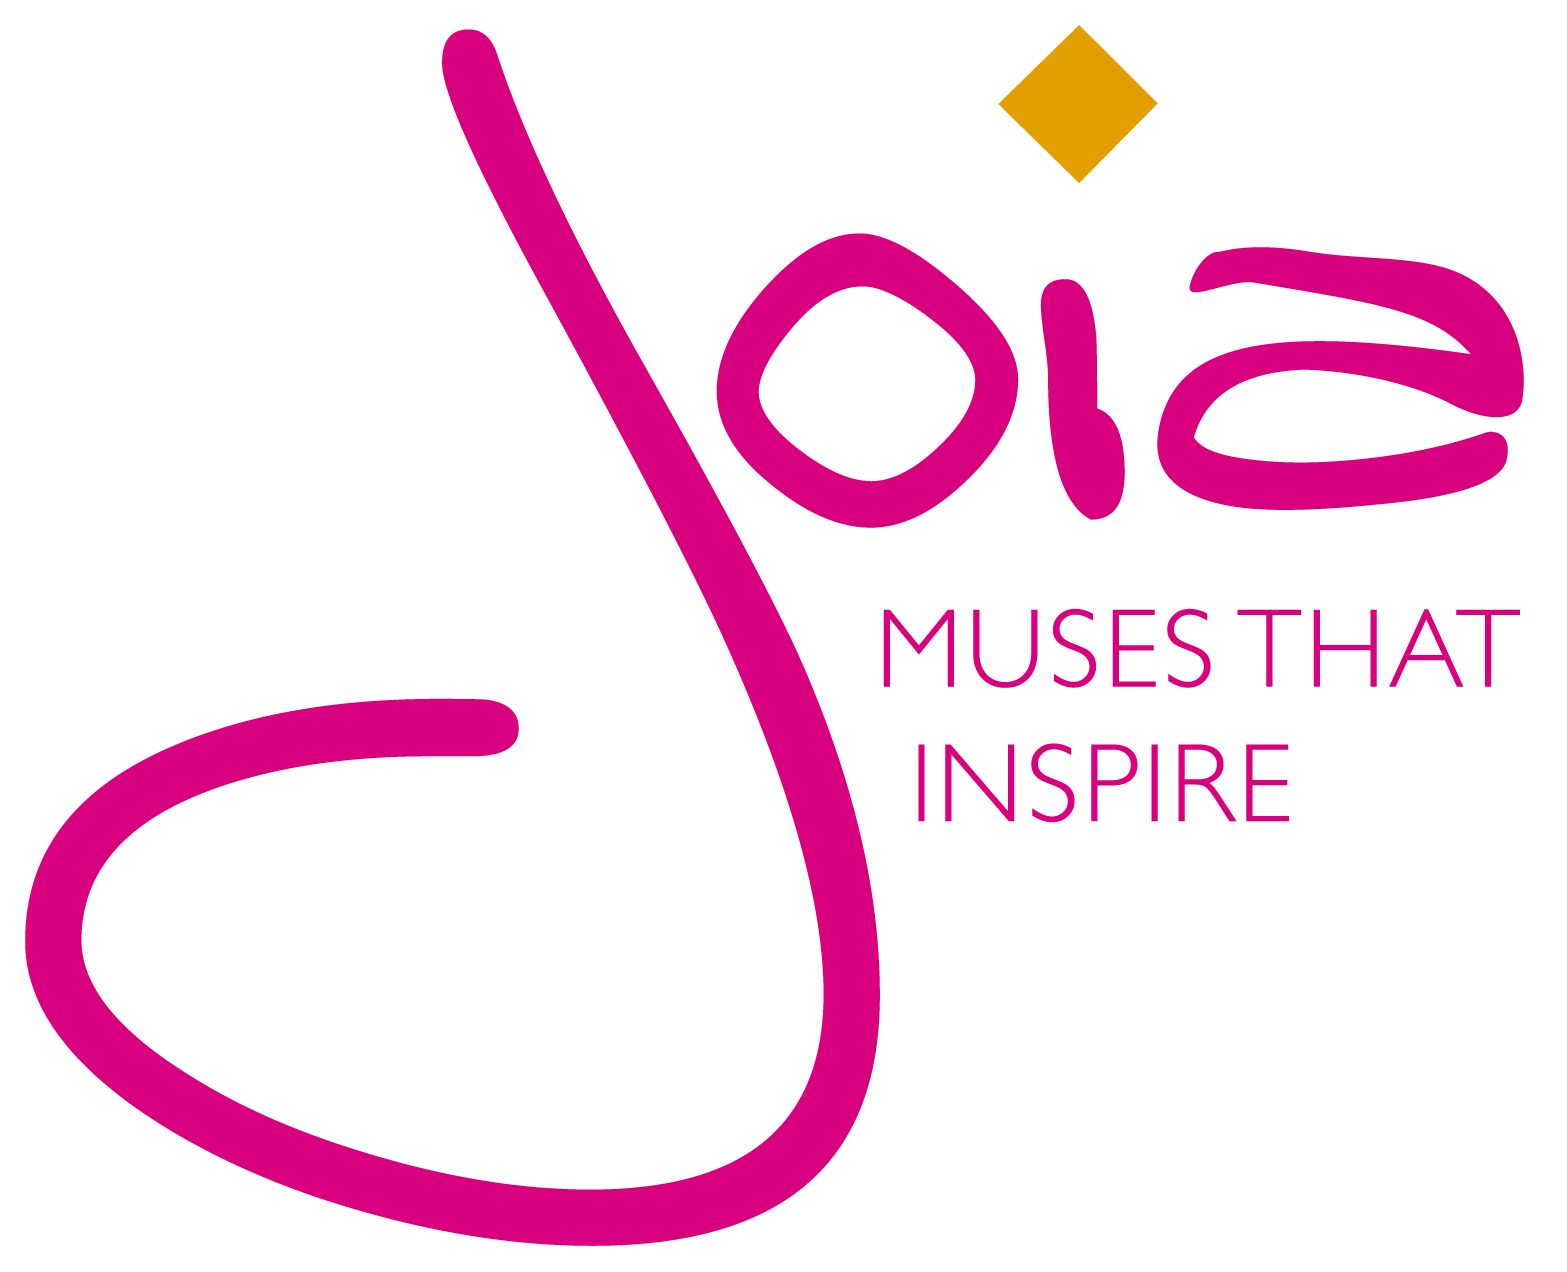 Joia – Muses That Inspire